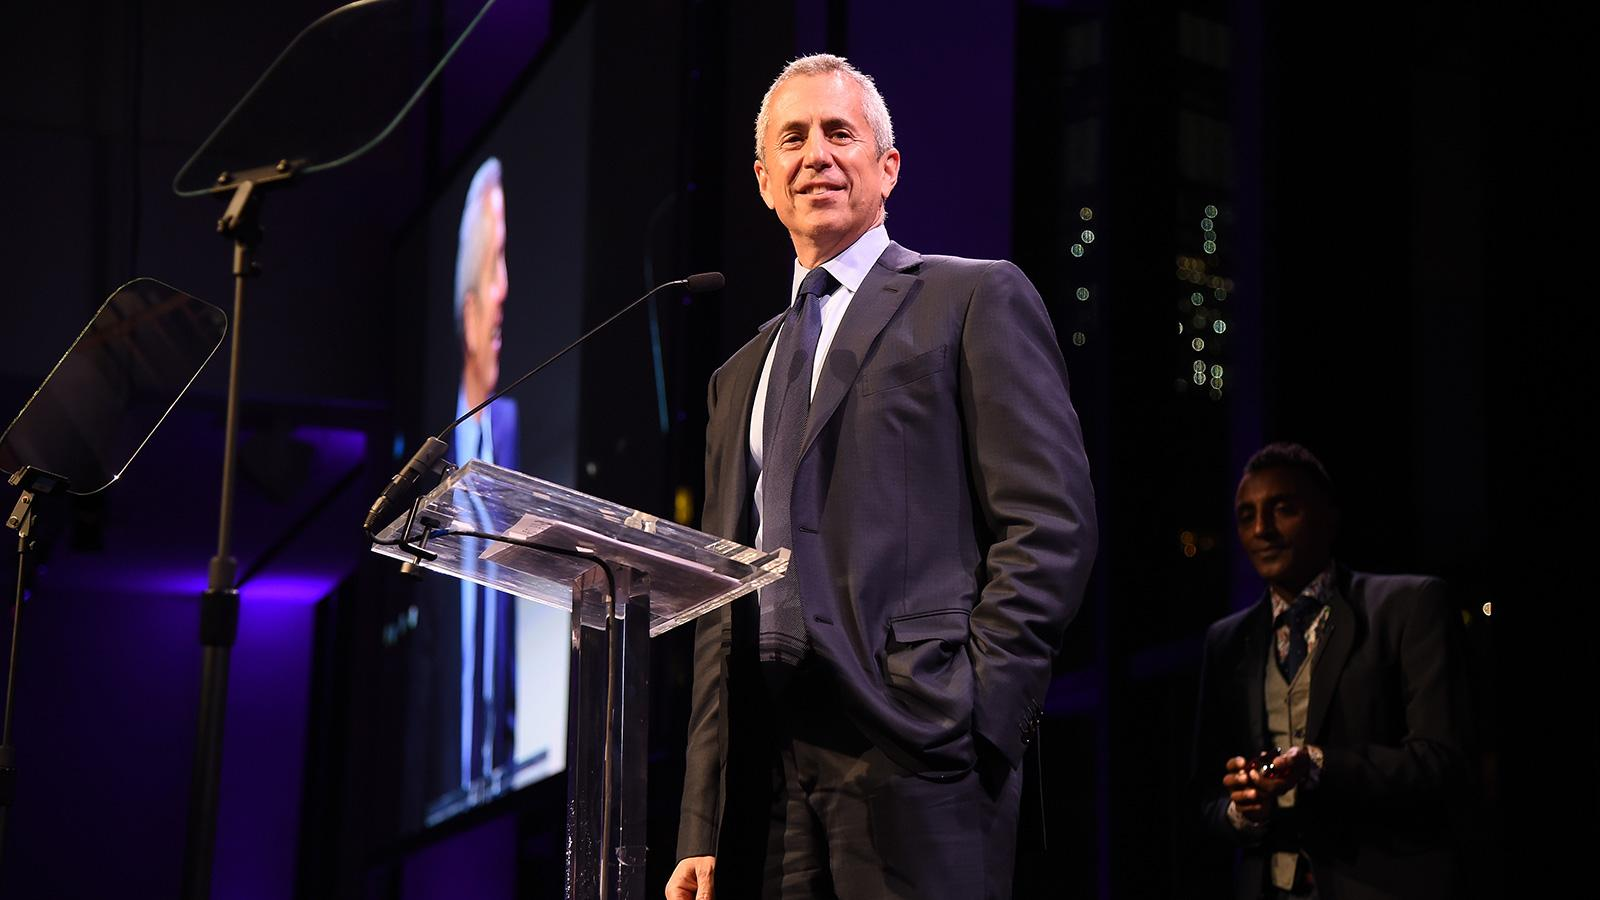 Danny Meyer Brings Back Tipping at his Restaurants